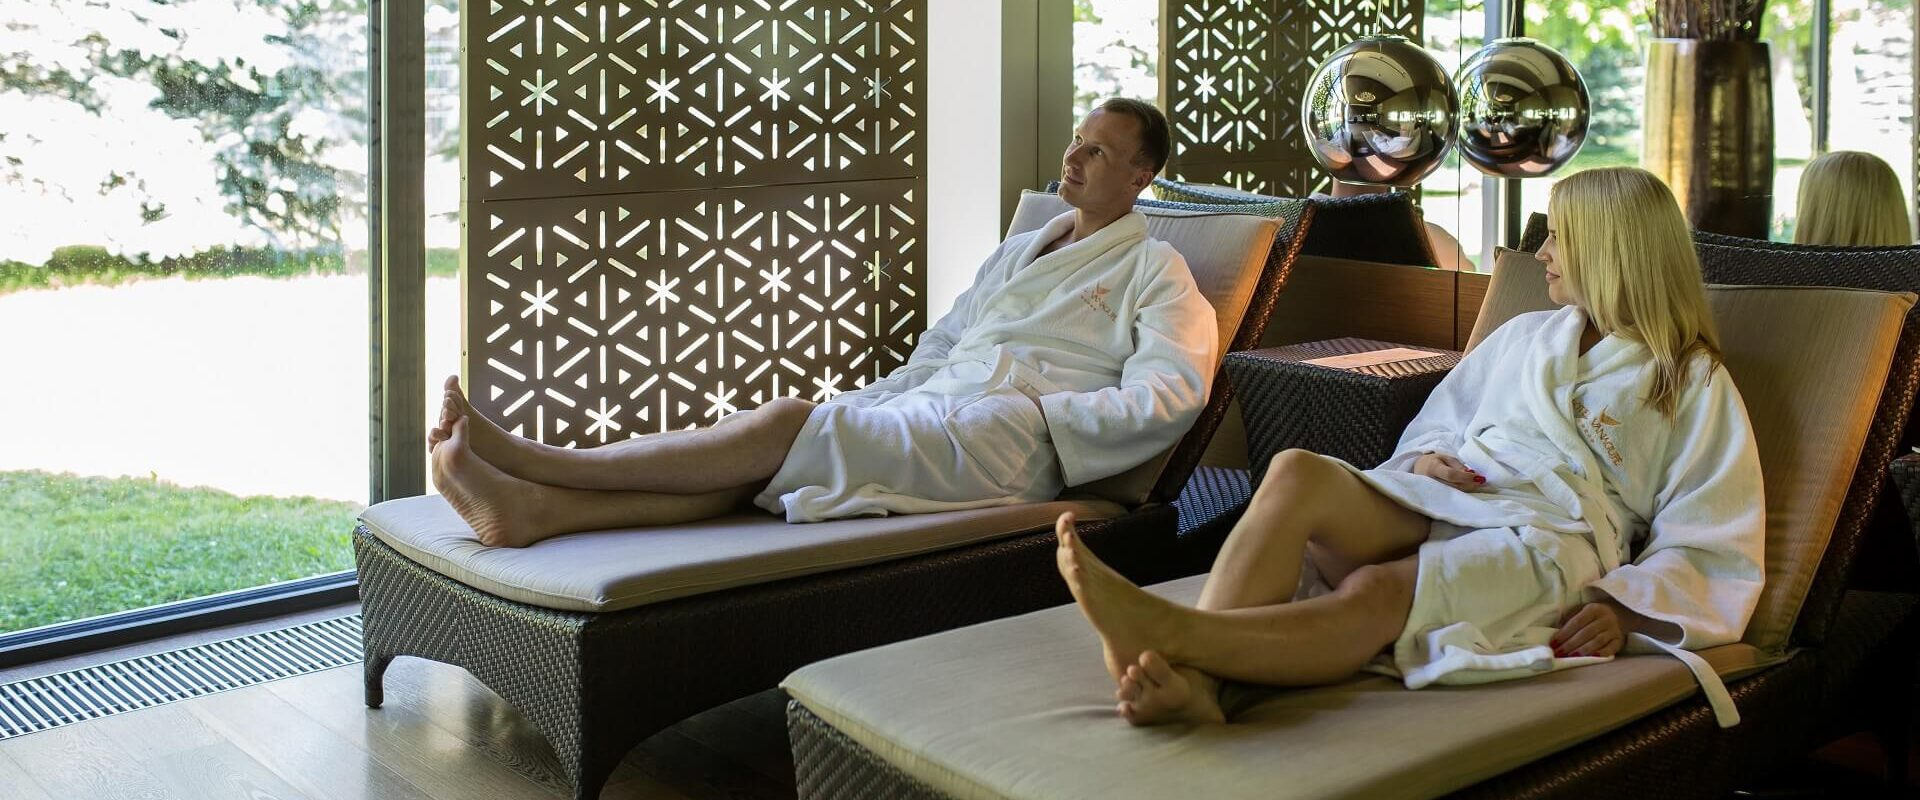 """SPA program for couple """"Cosiness together"""""""